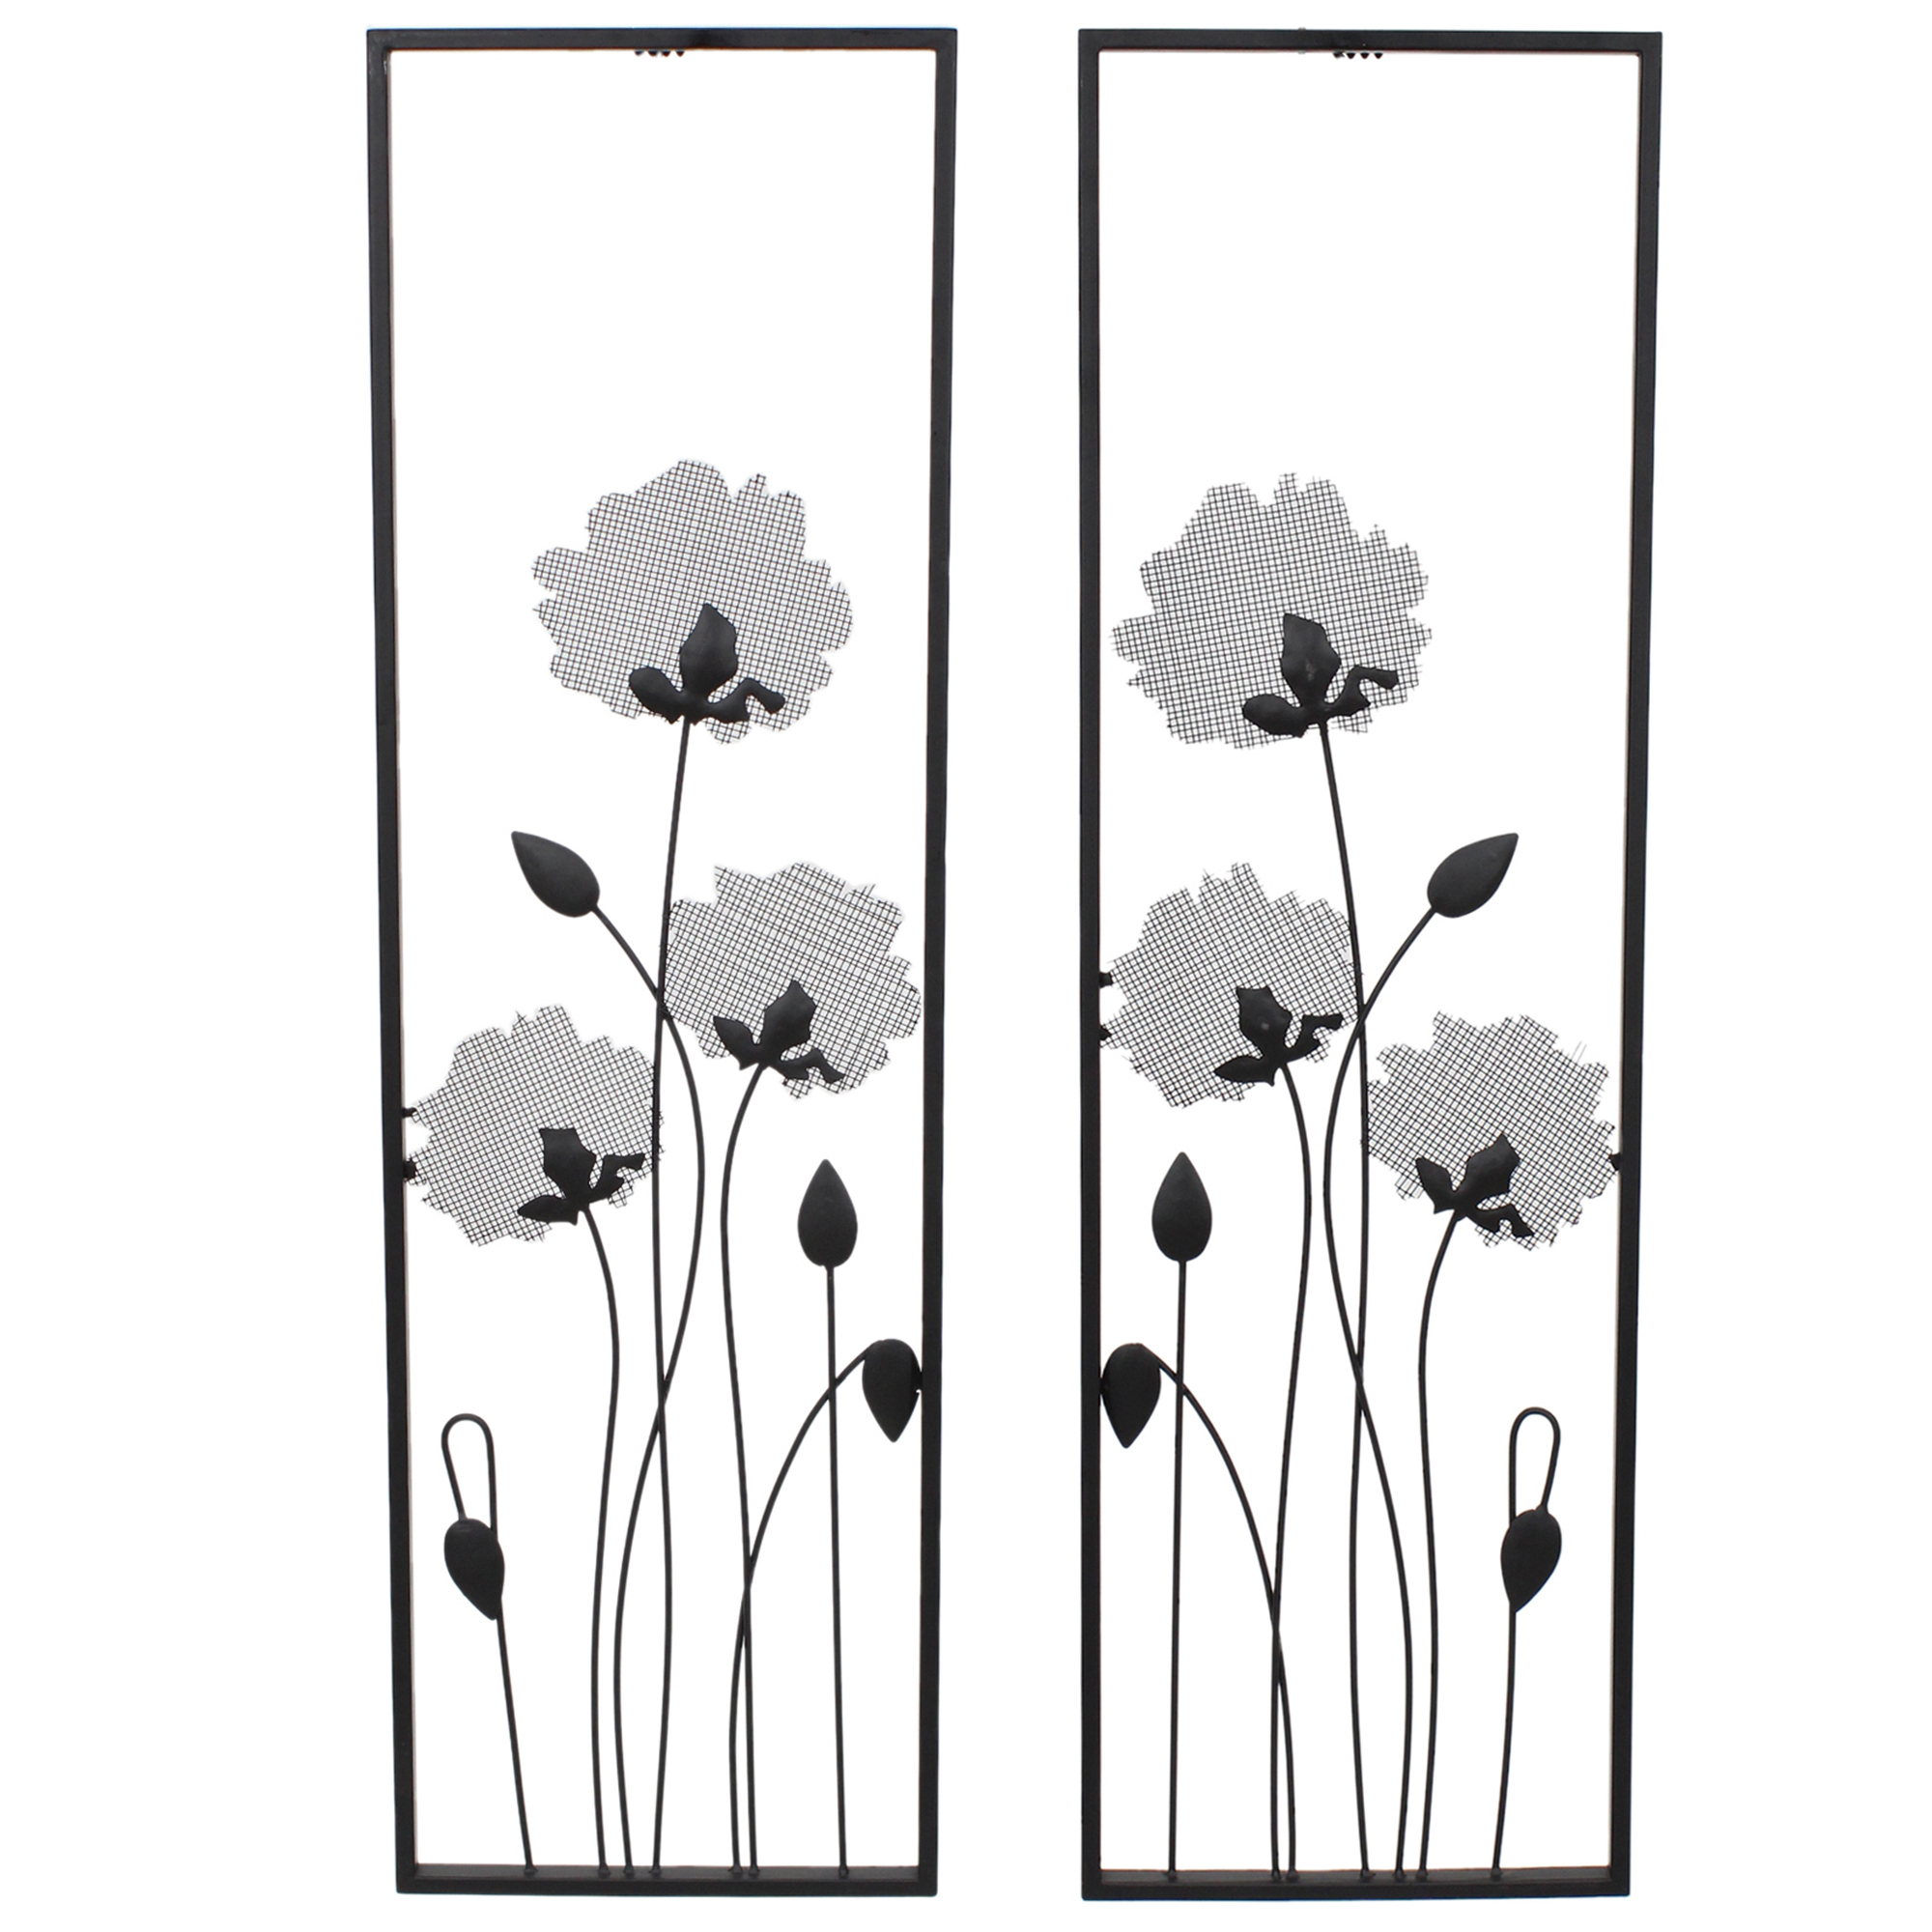 2 Piece Black Flower Metal Wall Art Set Throughout 4 Piece Metal Wall Plaque Decor Sets (View 19 of 30)